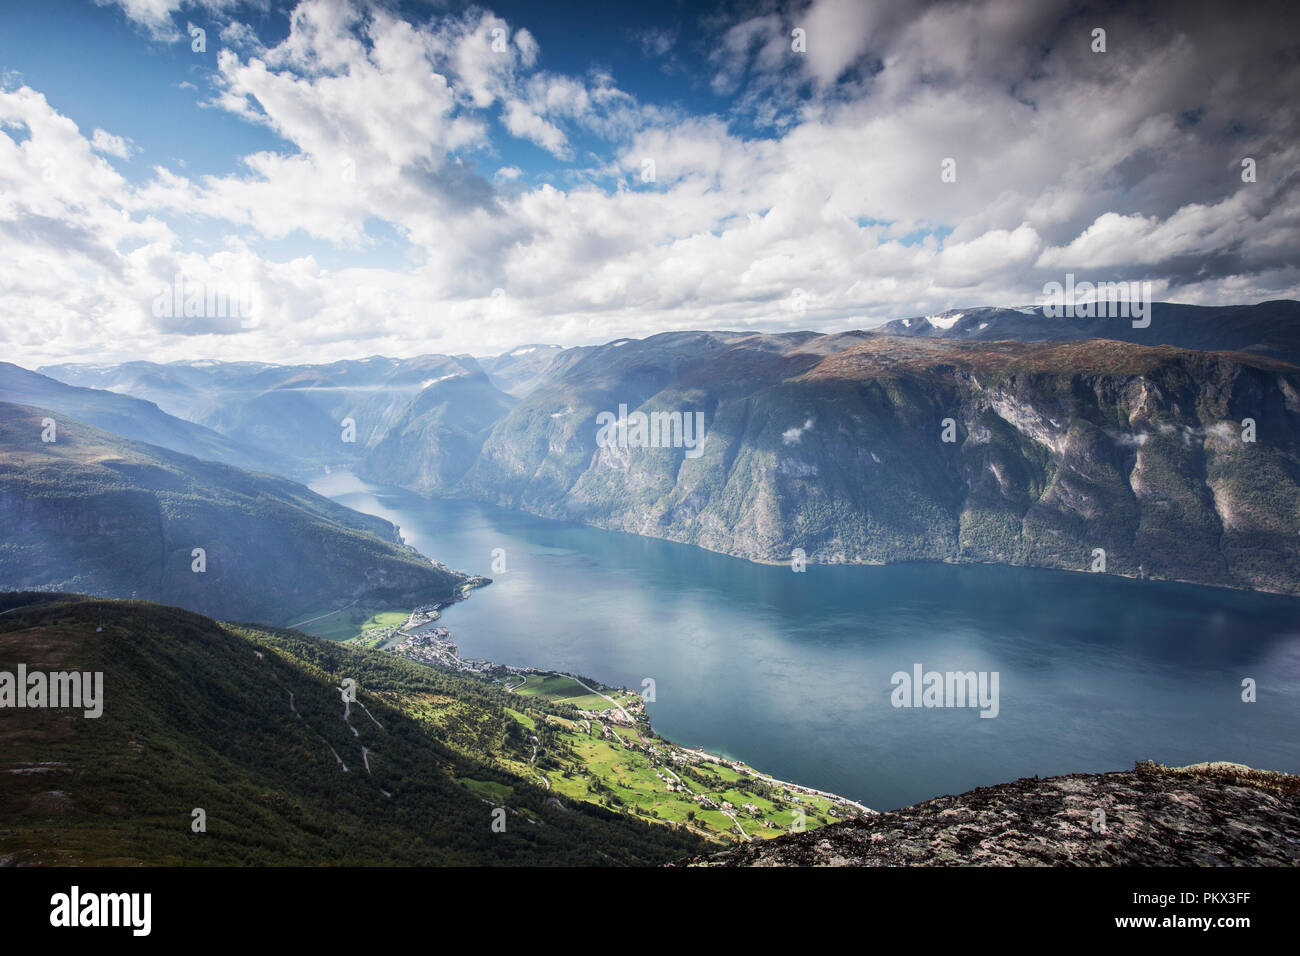 Norway, stunning mountain landscape beautiful sunlight and blue sky Stock Photo